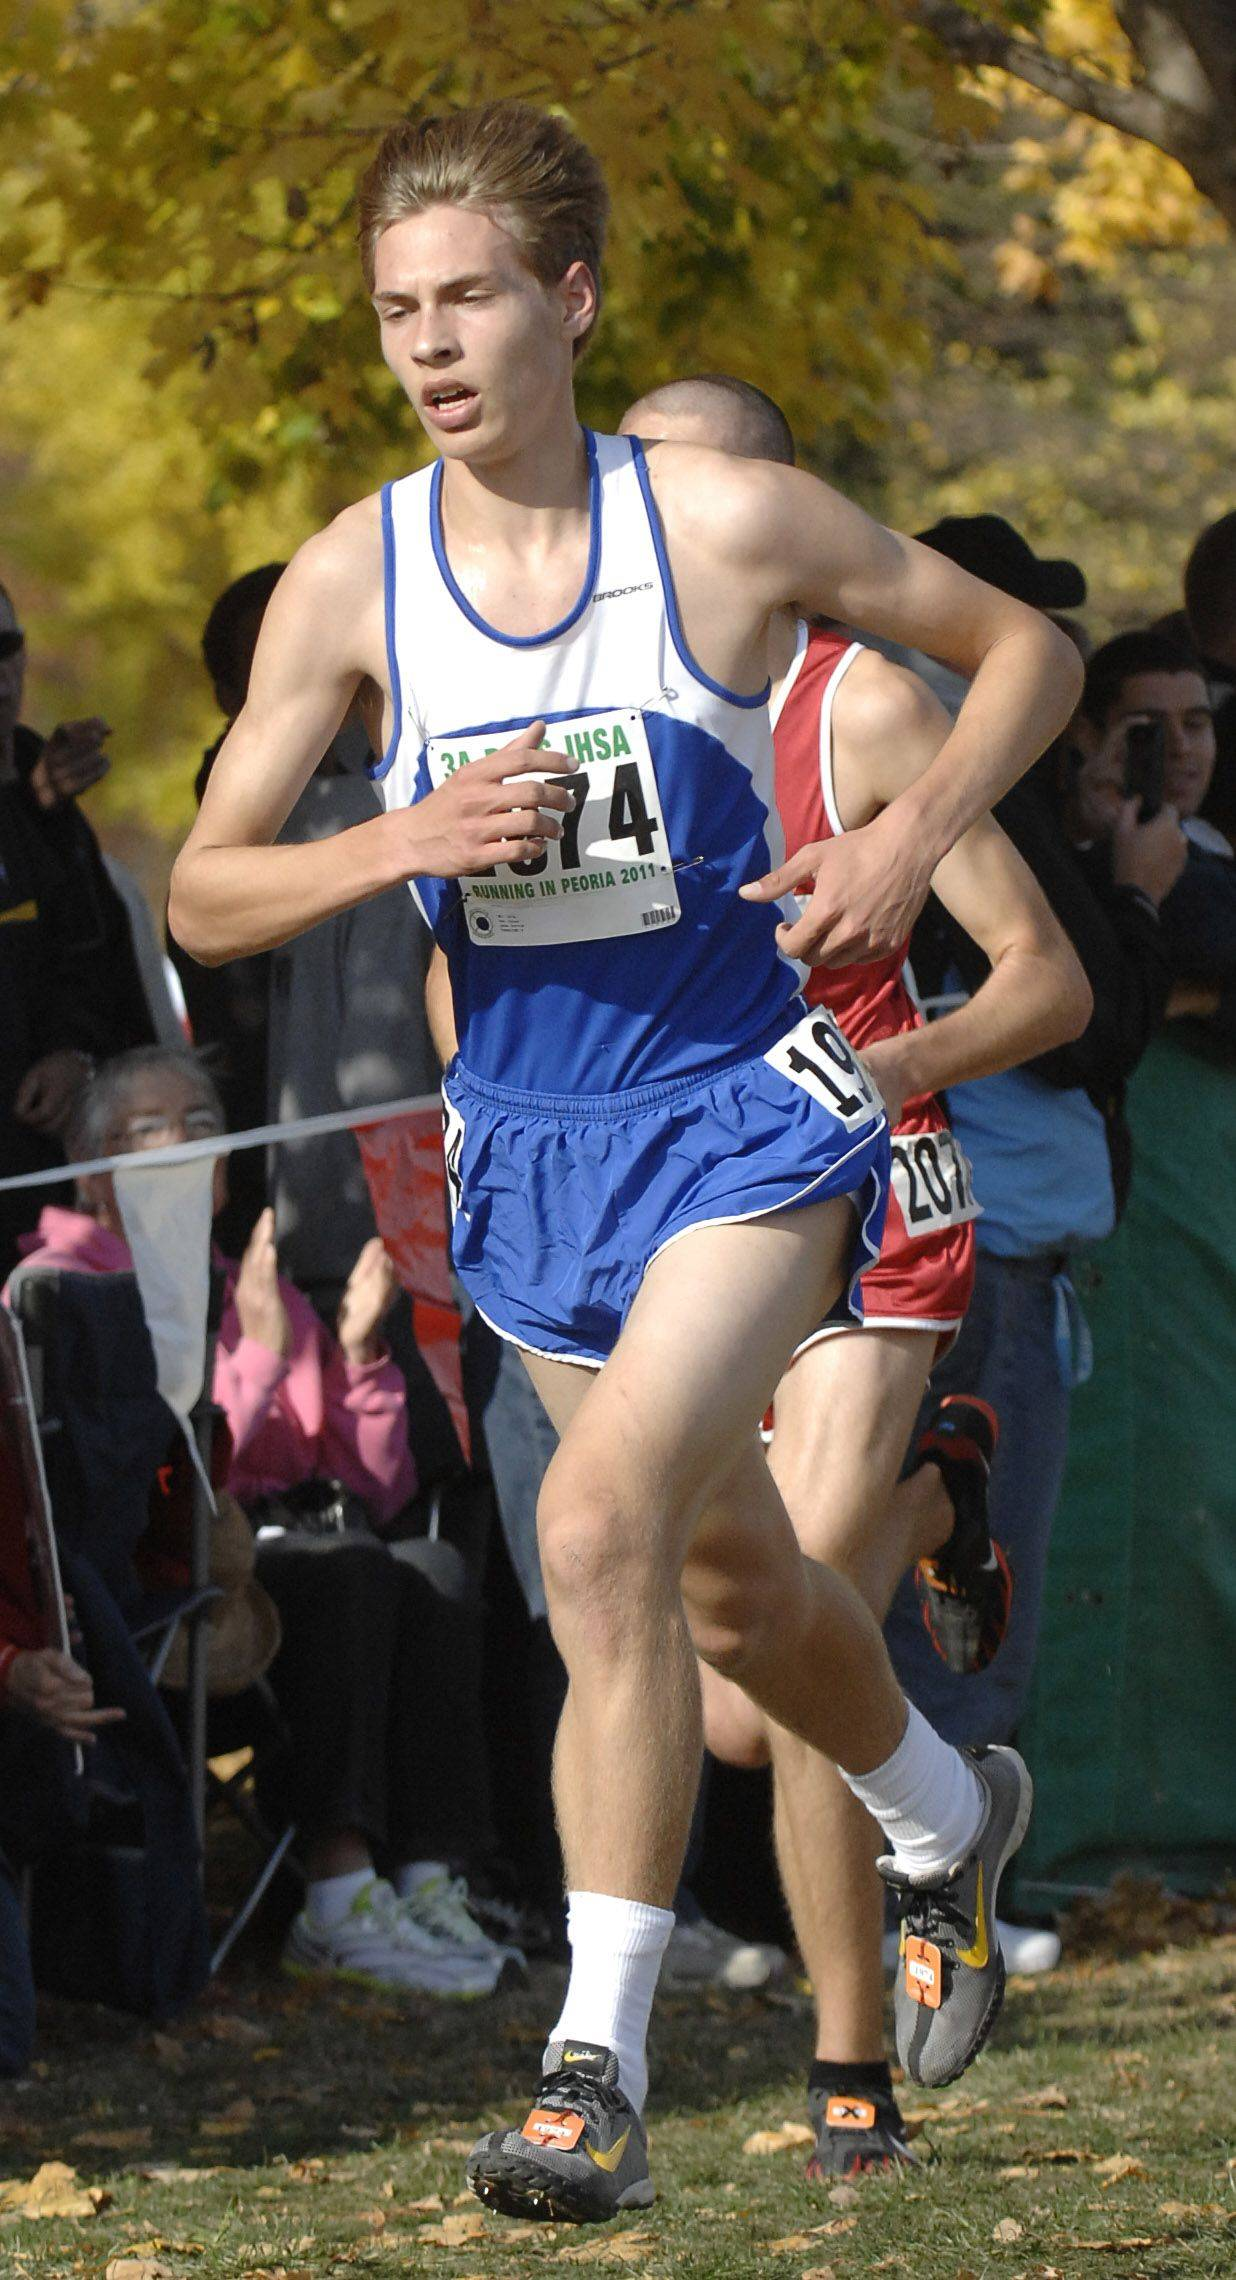 Lake Zurich's Pat Juras takes 7th place with a time of 14:33 in the 3A state cross country final.